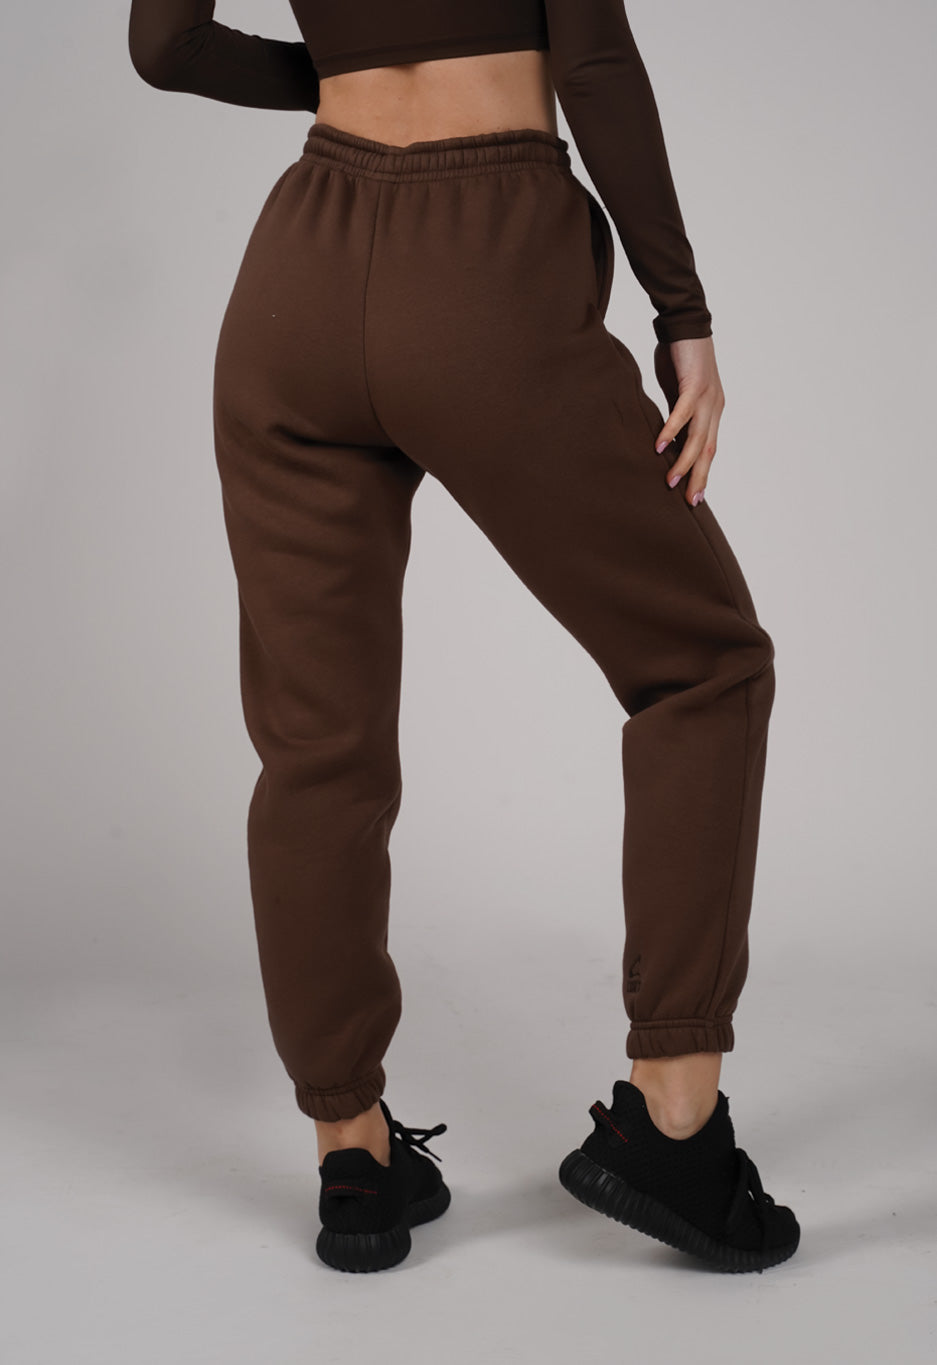 OCTOBER Sweatpants - LH x COHL'S